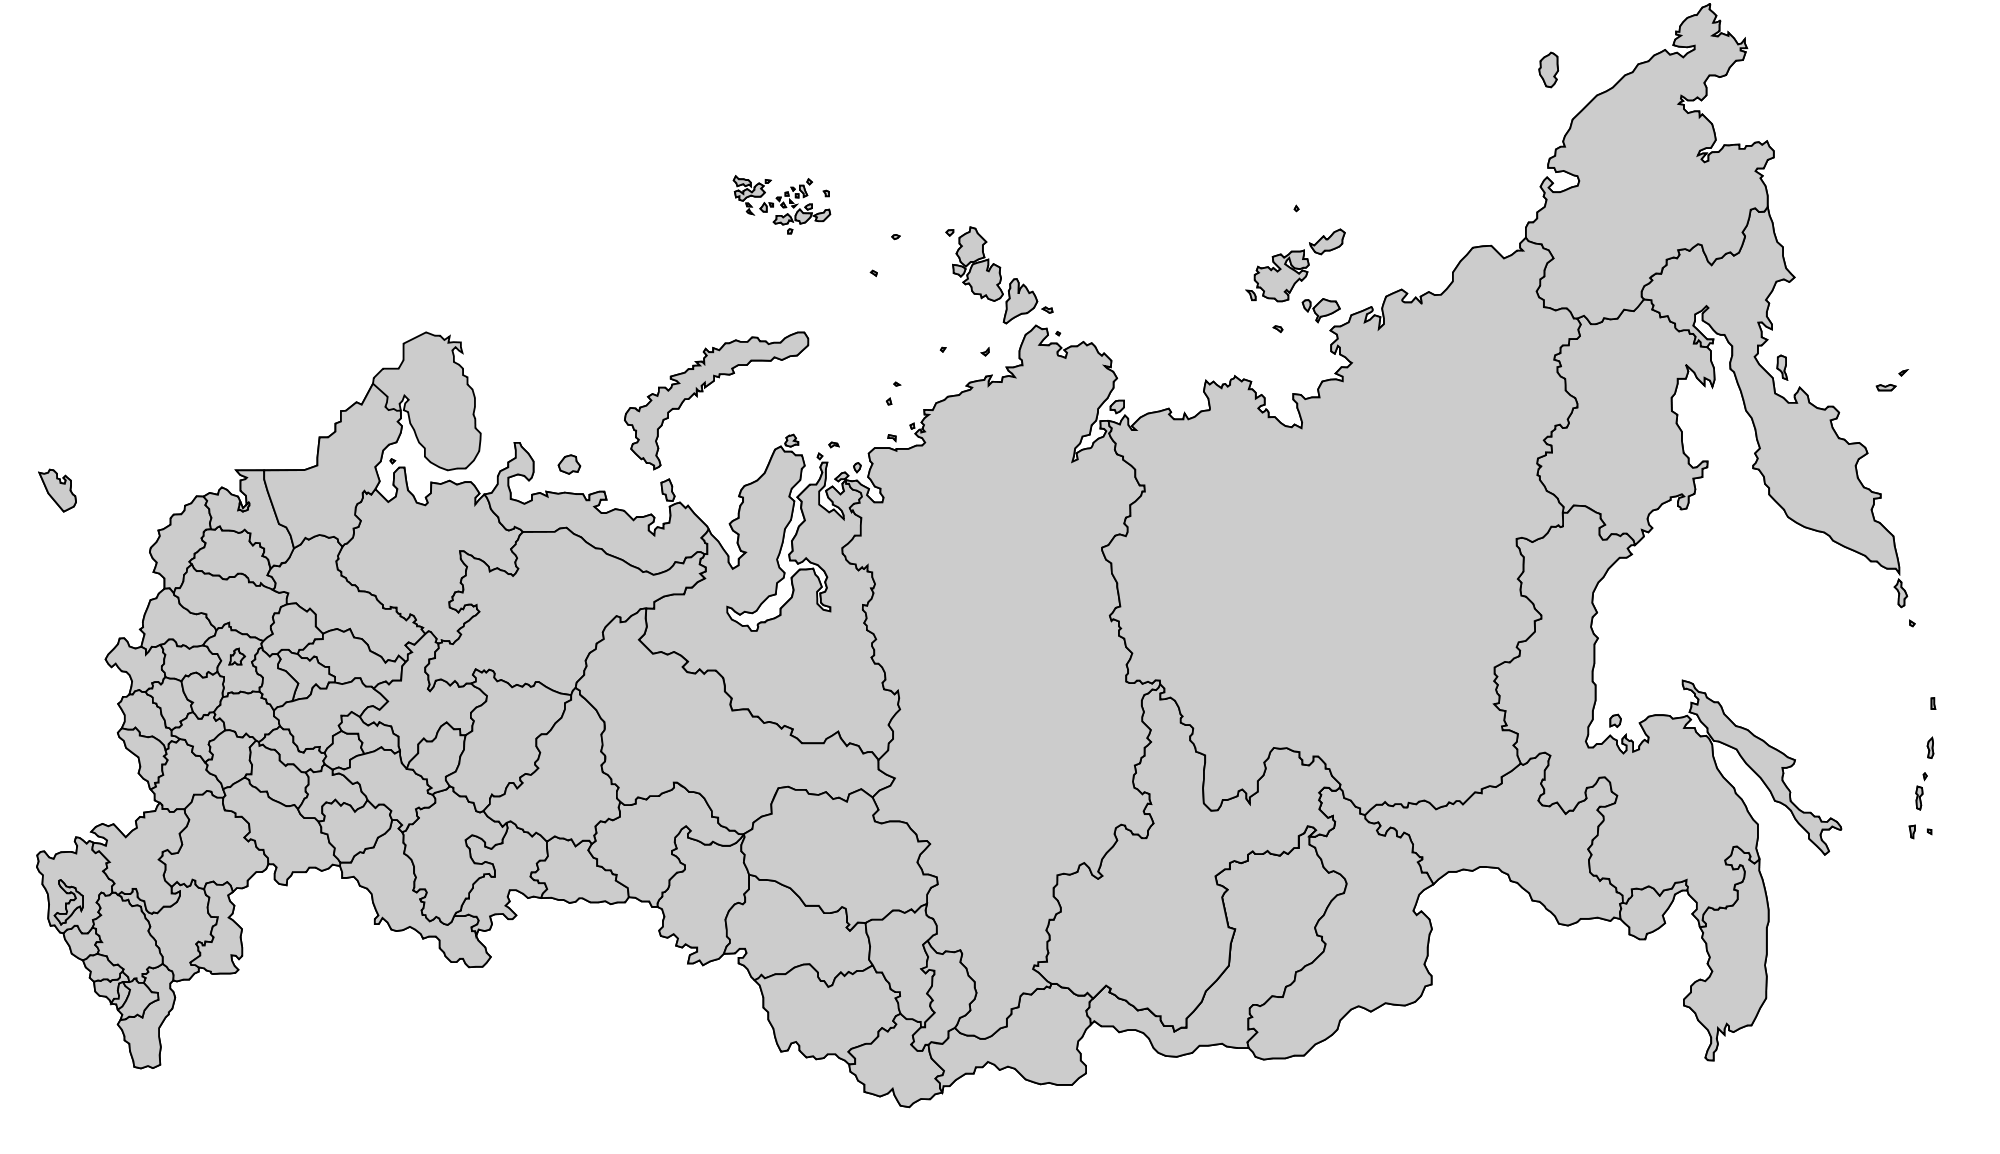 Image PxMap Of Russia Svgpng Implausable Alternate - Blank map of russia